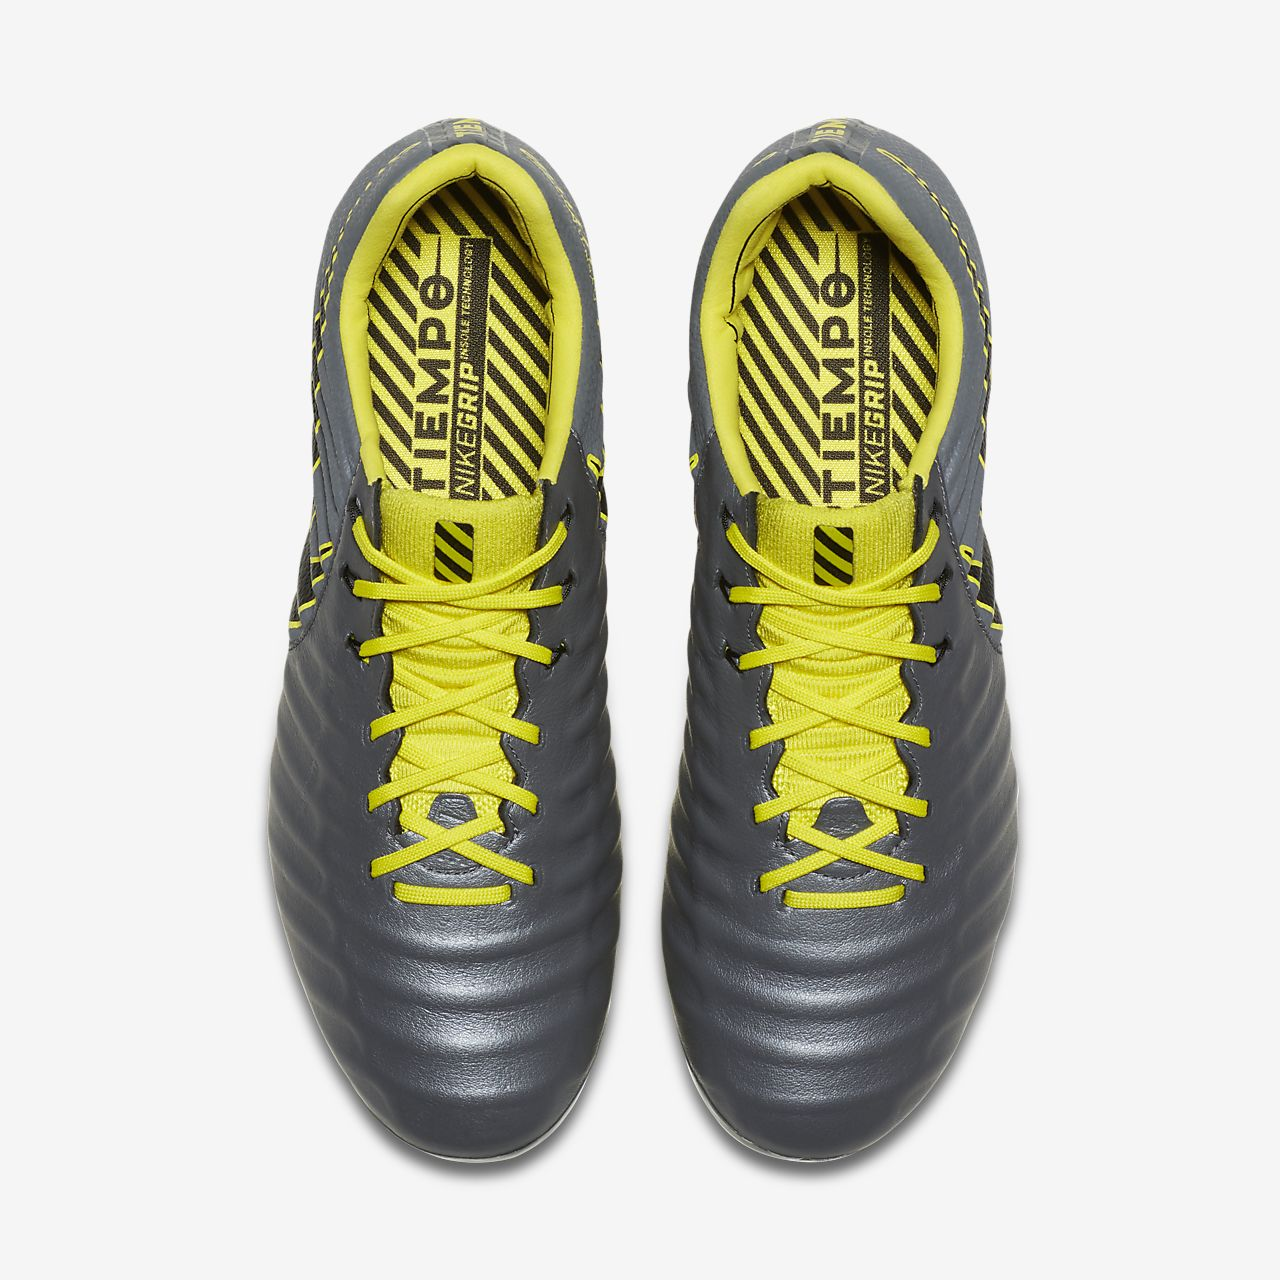 b7082885d Nike Legend VII Elite AG-PRO Artificial-Grass Football Boot. Nike.com GB